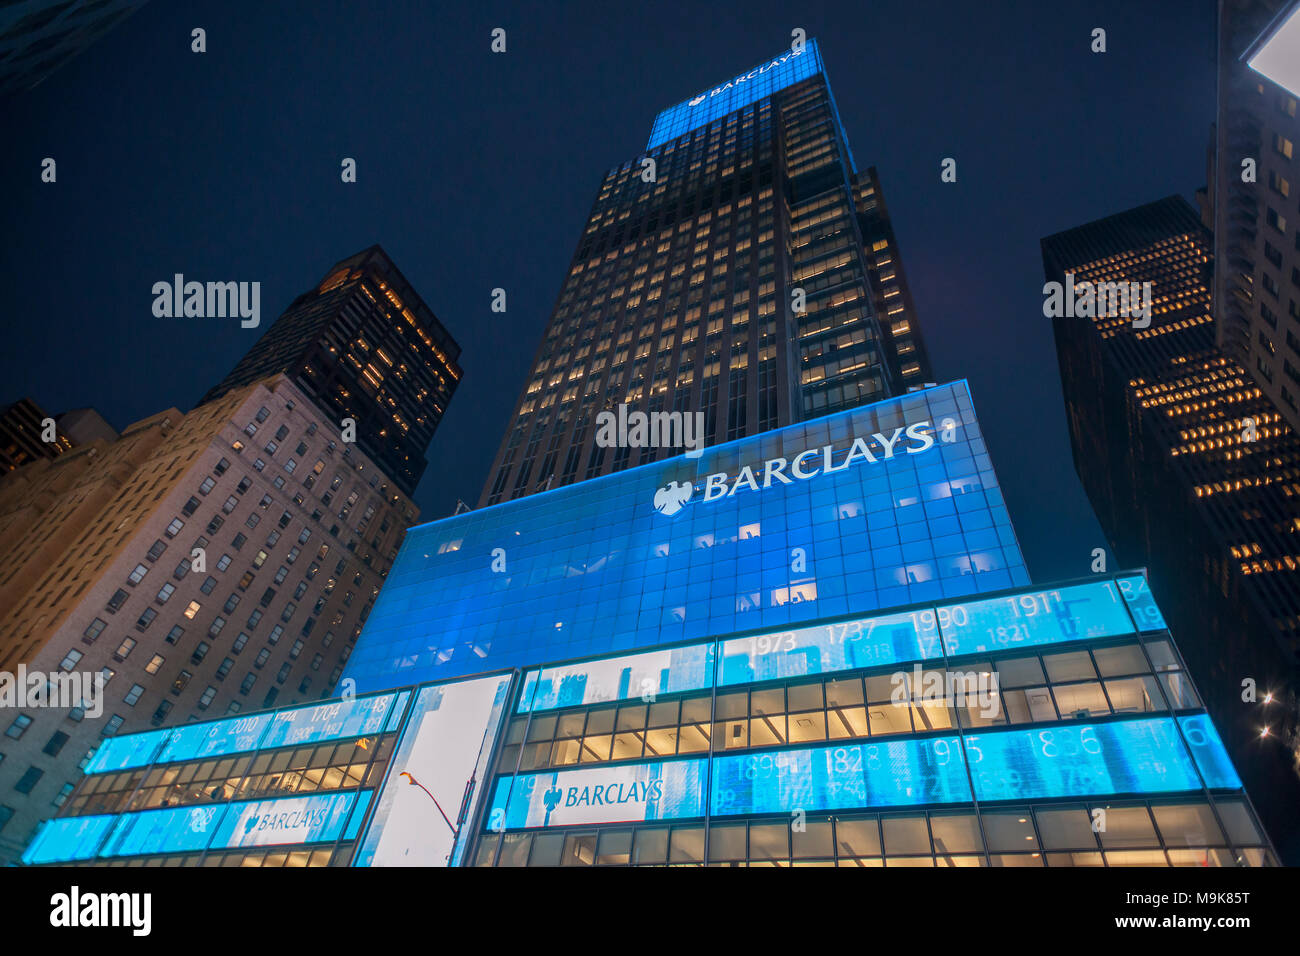 The former Lehman Brothers Global headquarters in New York